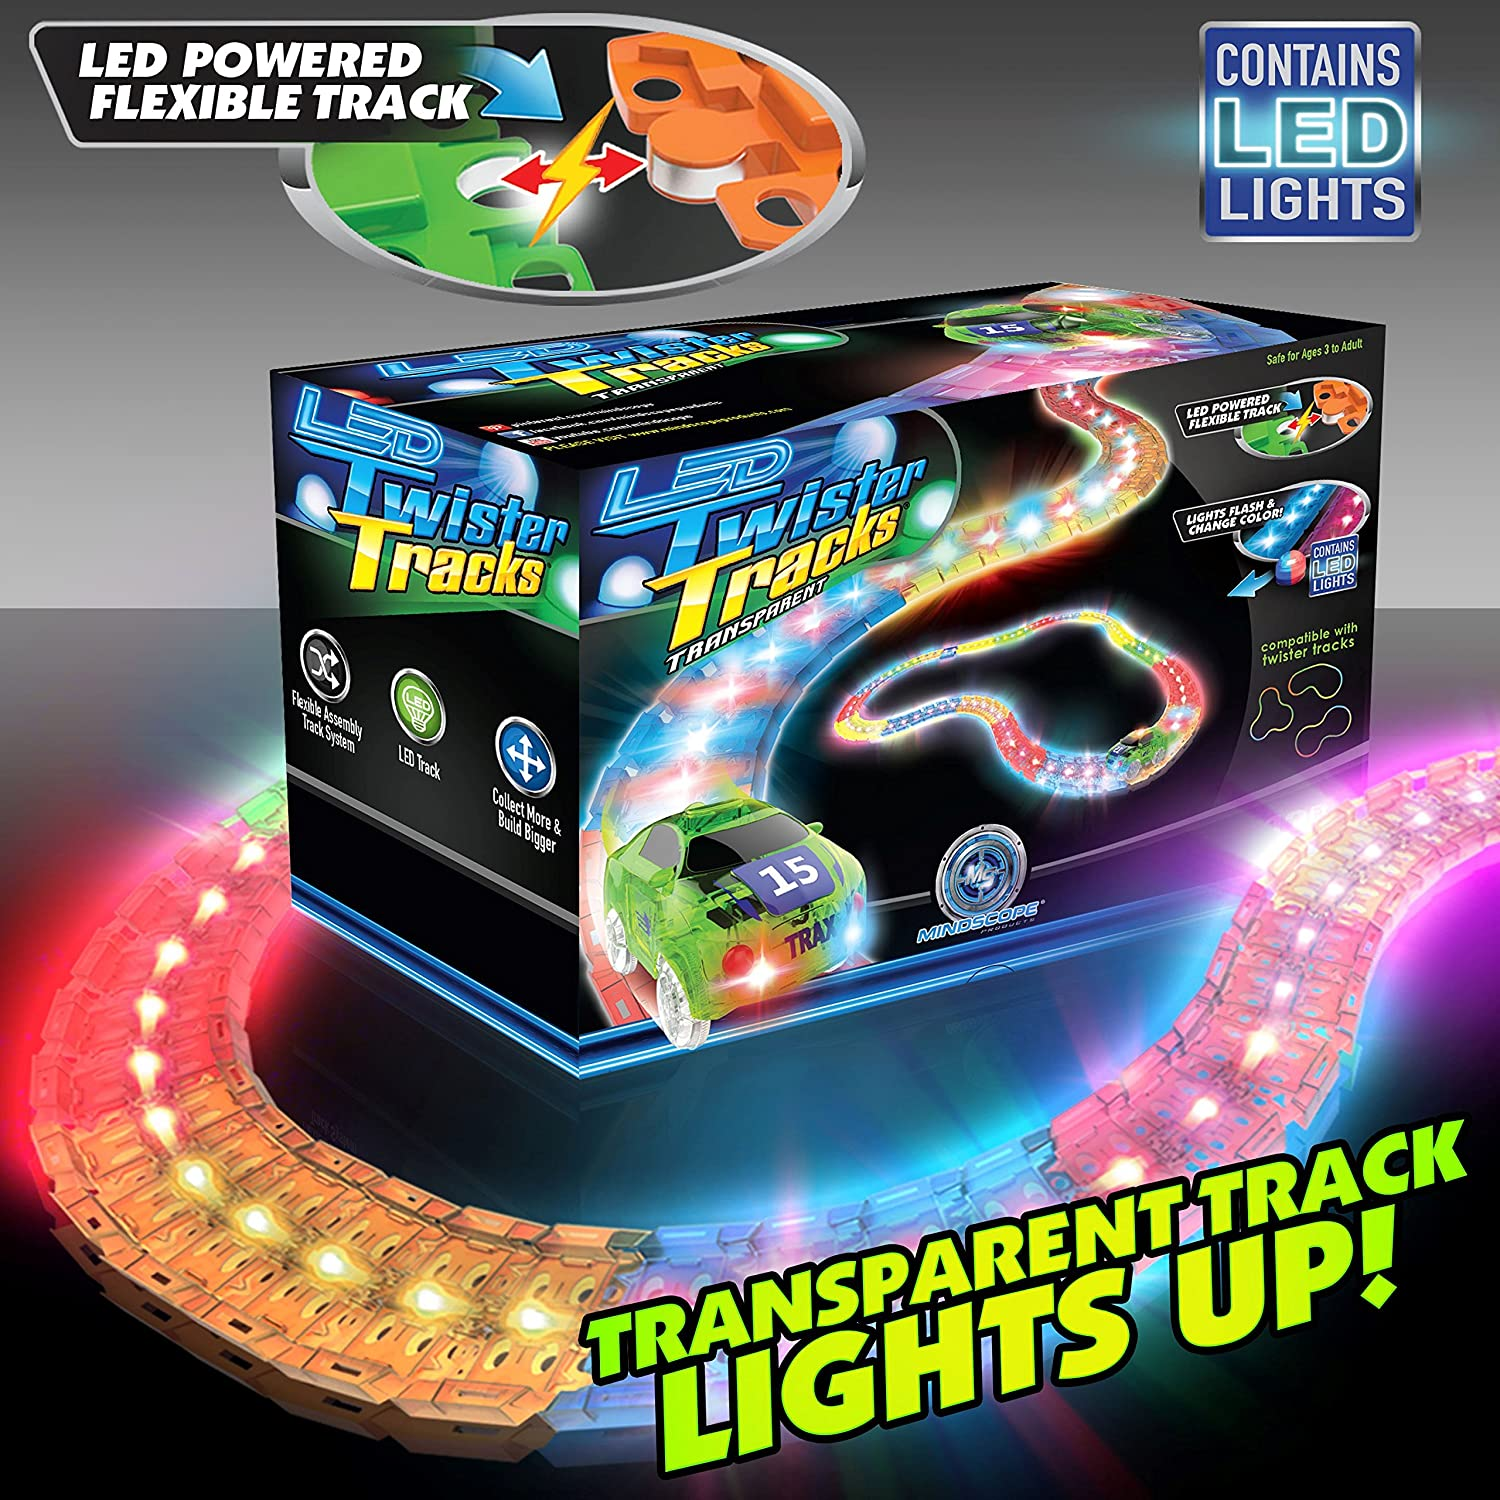 Amazon.com Mindscope LED Laser Twister Tracks 12 Feet of Light Up Flexible Track + 1 Light Up Race Car Each Inidual Track Piece Contains Lights ...  sc 1 st  Amazon.com & Amazon.com: Mindscope LED Laser Twister Tracks 12 Feet of Light Up ... azcodes.com